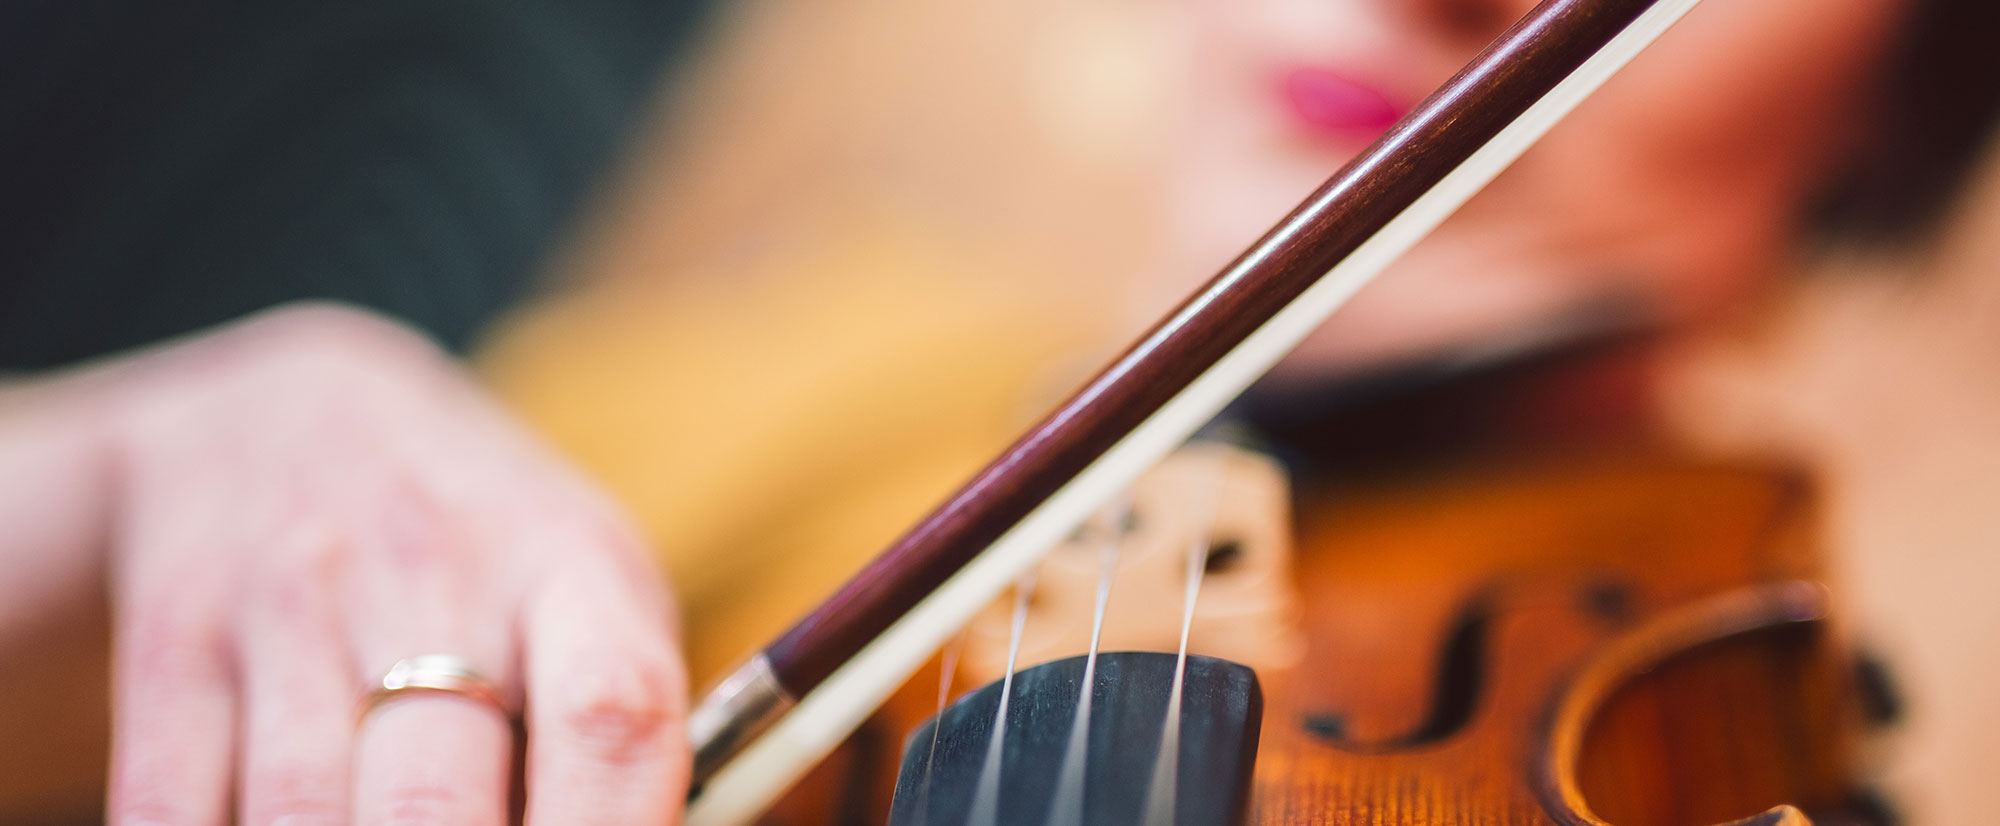 Close up of female hands playing violin with bow